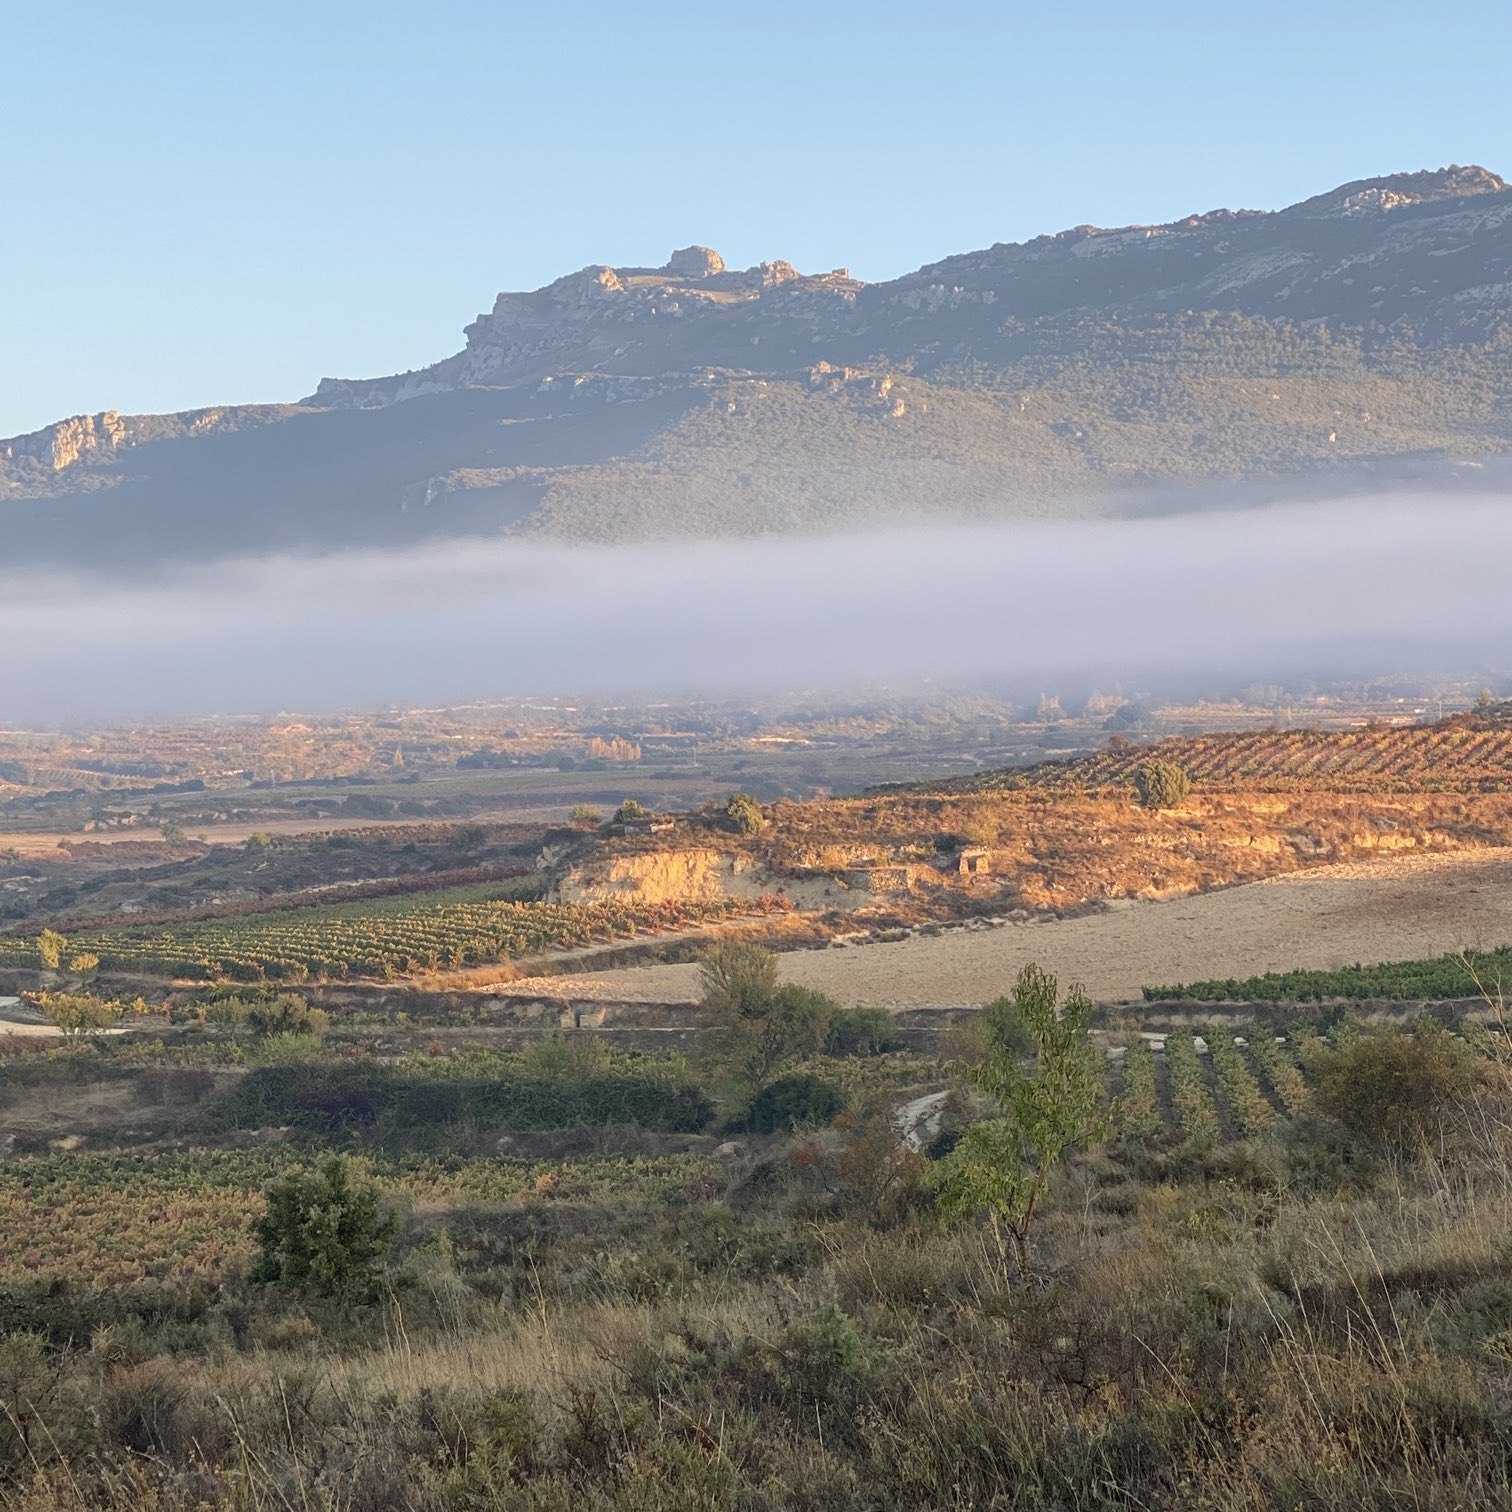 I'm going to miss these morning vineyard visits. #sanvicente #rioja https://t.co/1HzRfVgGoi